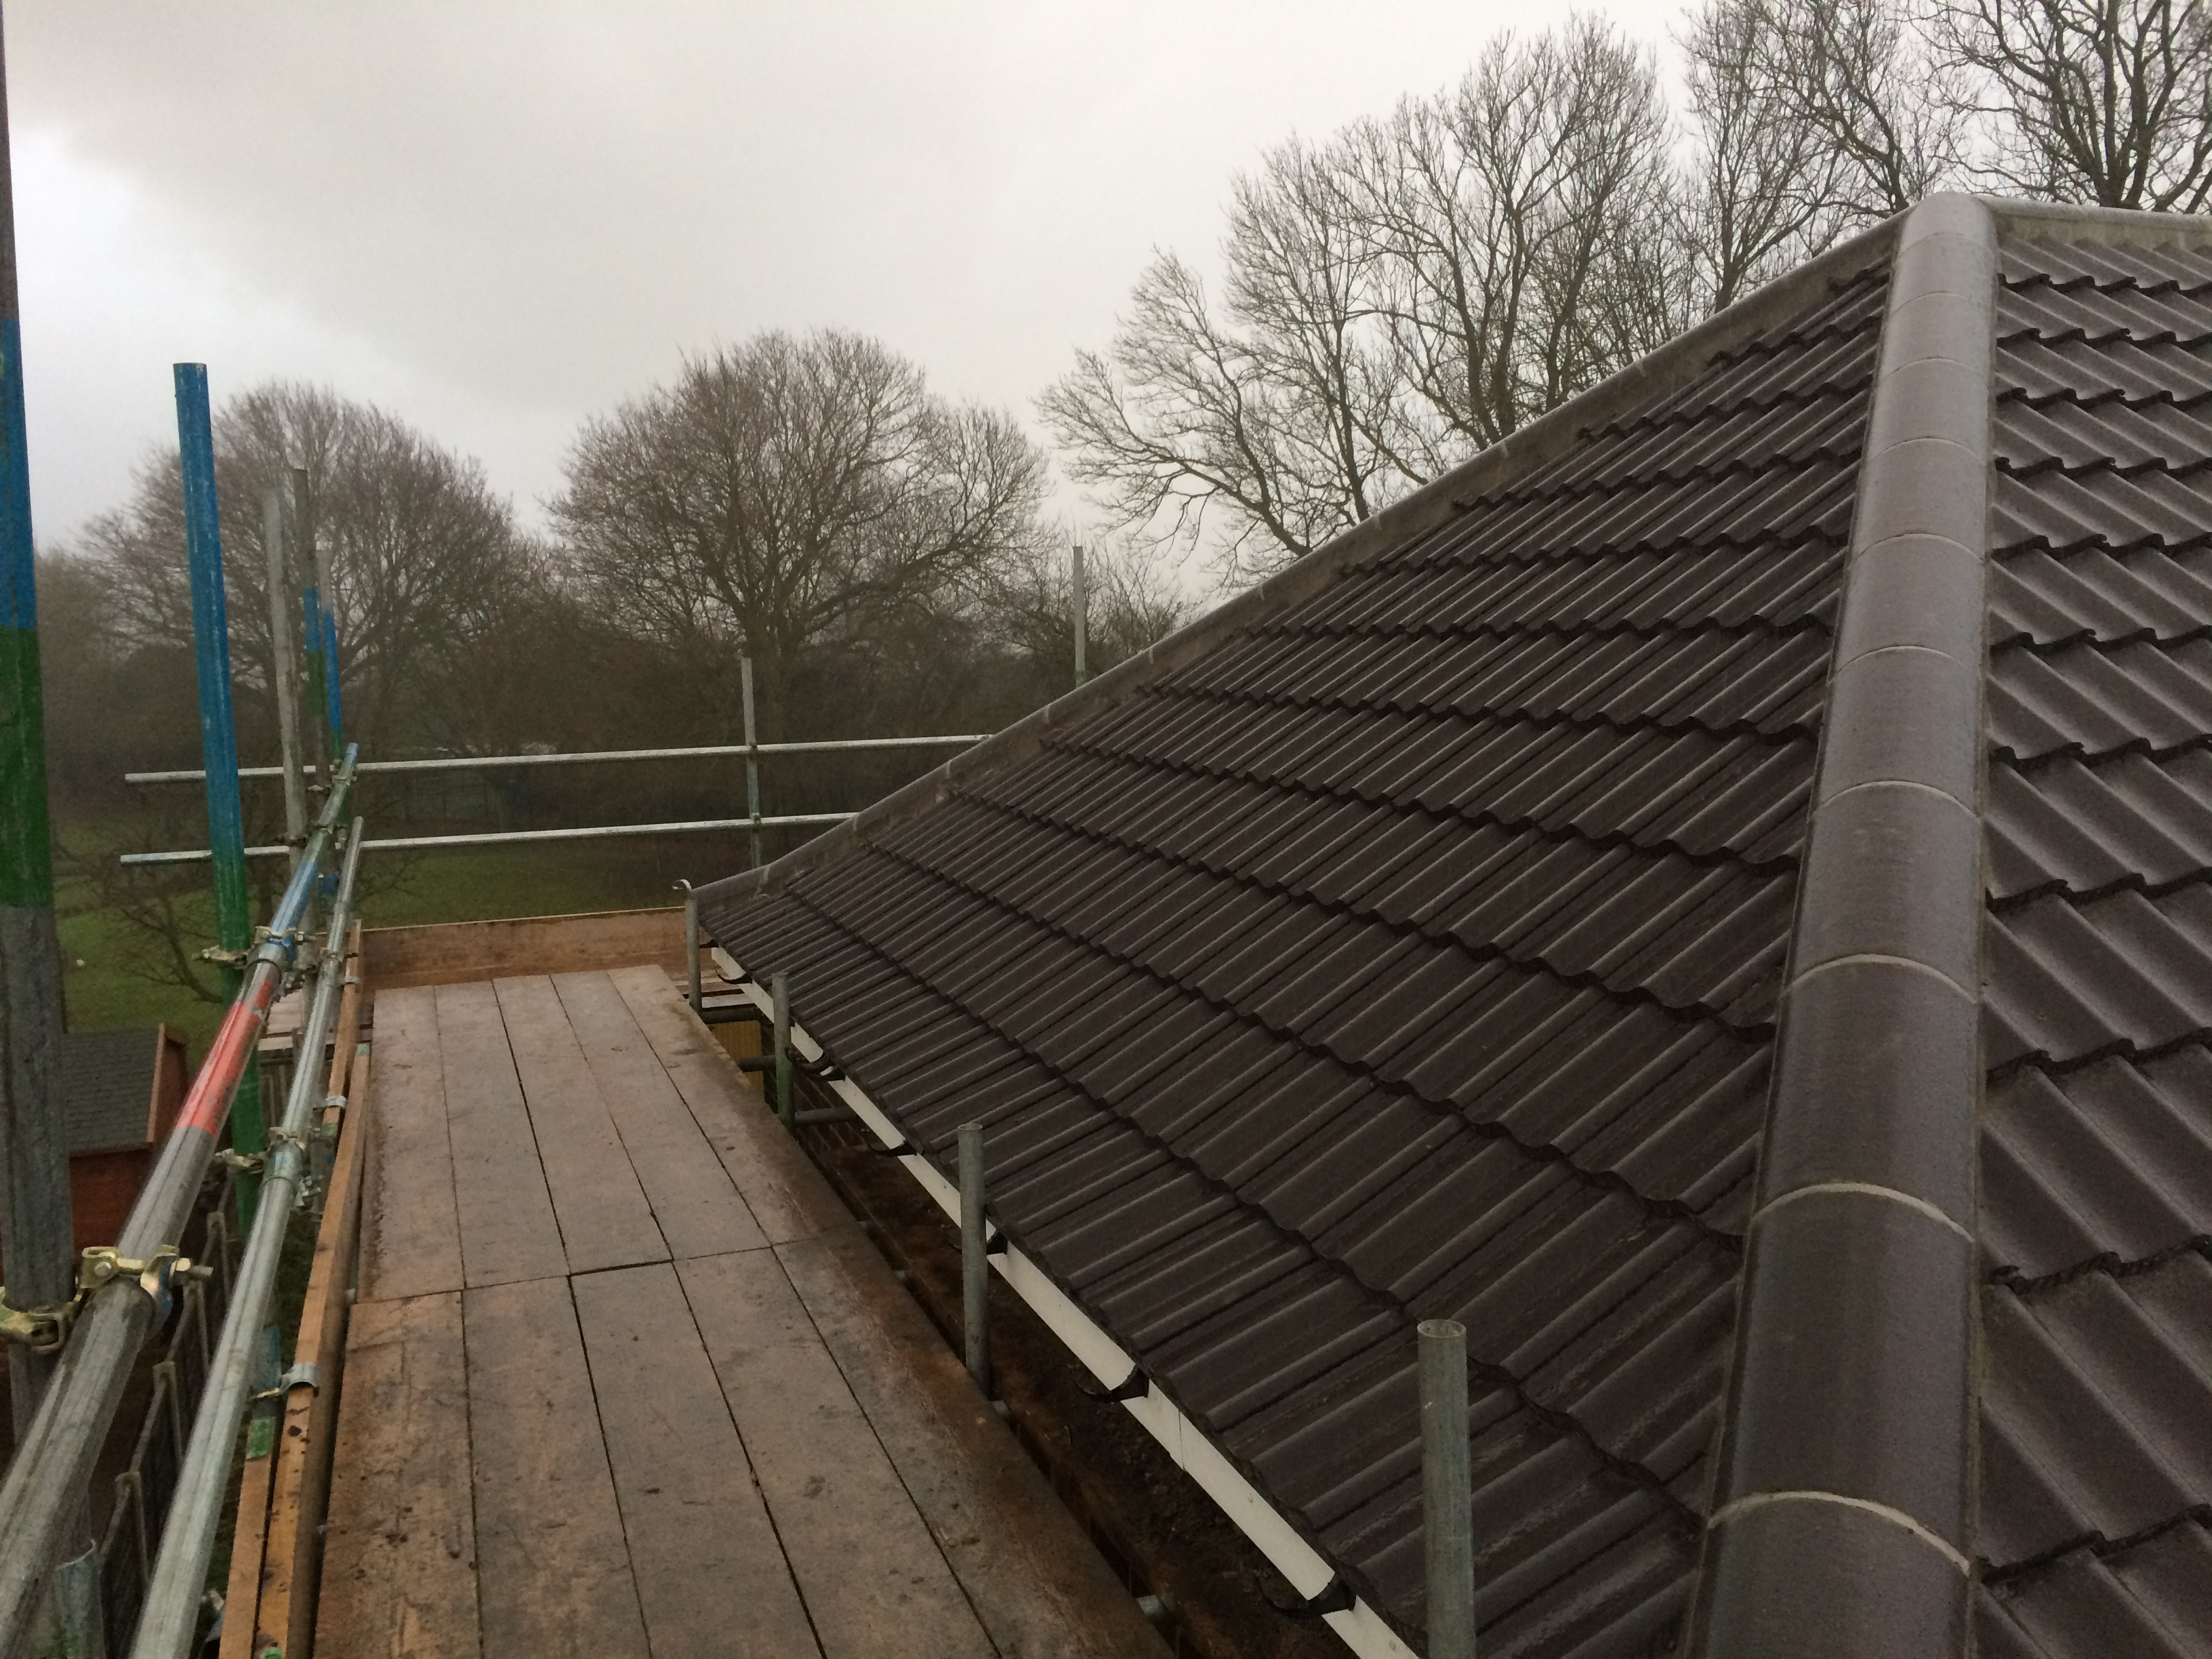 https://www.bluedotroofing.uk/wp-content/uploads/2018/01/bluedot-roofing-re-roof-marton-1.jpg